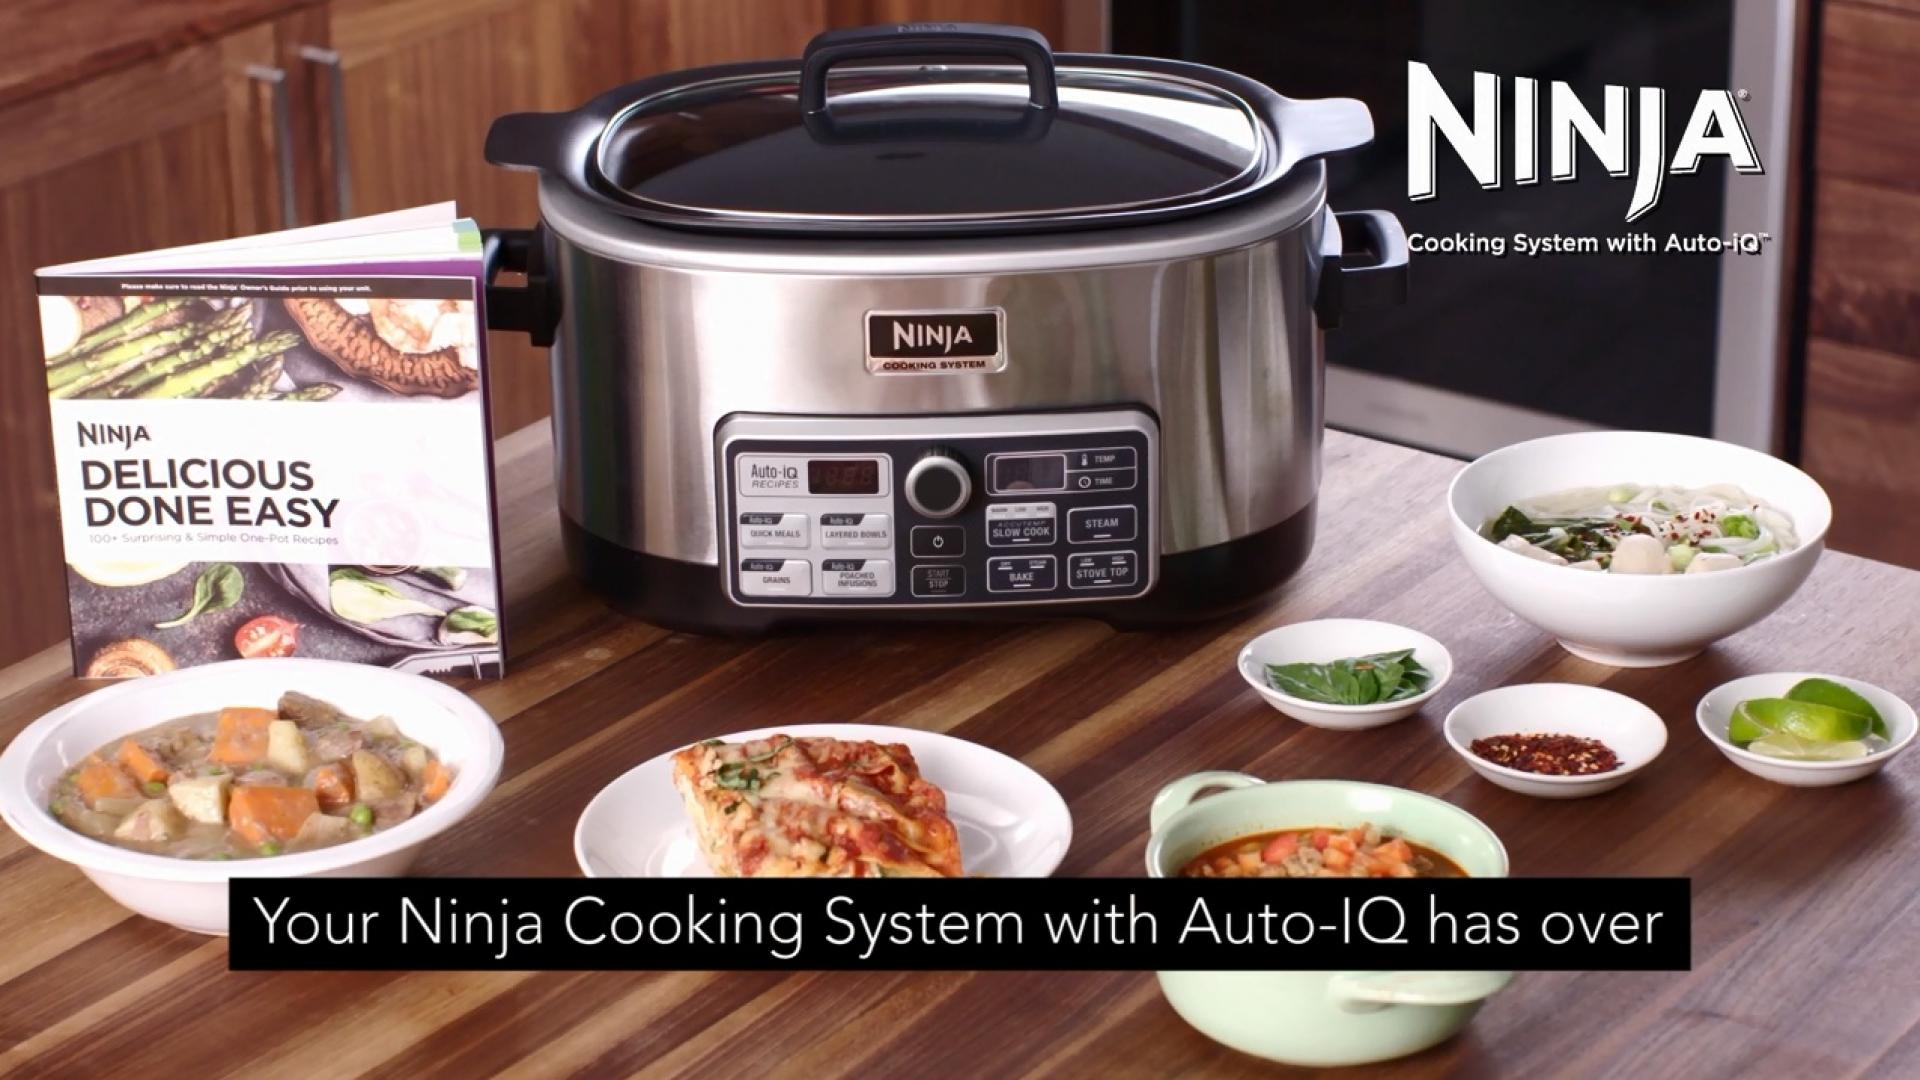 Ninja Cooking System with Auto-IQ